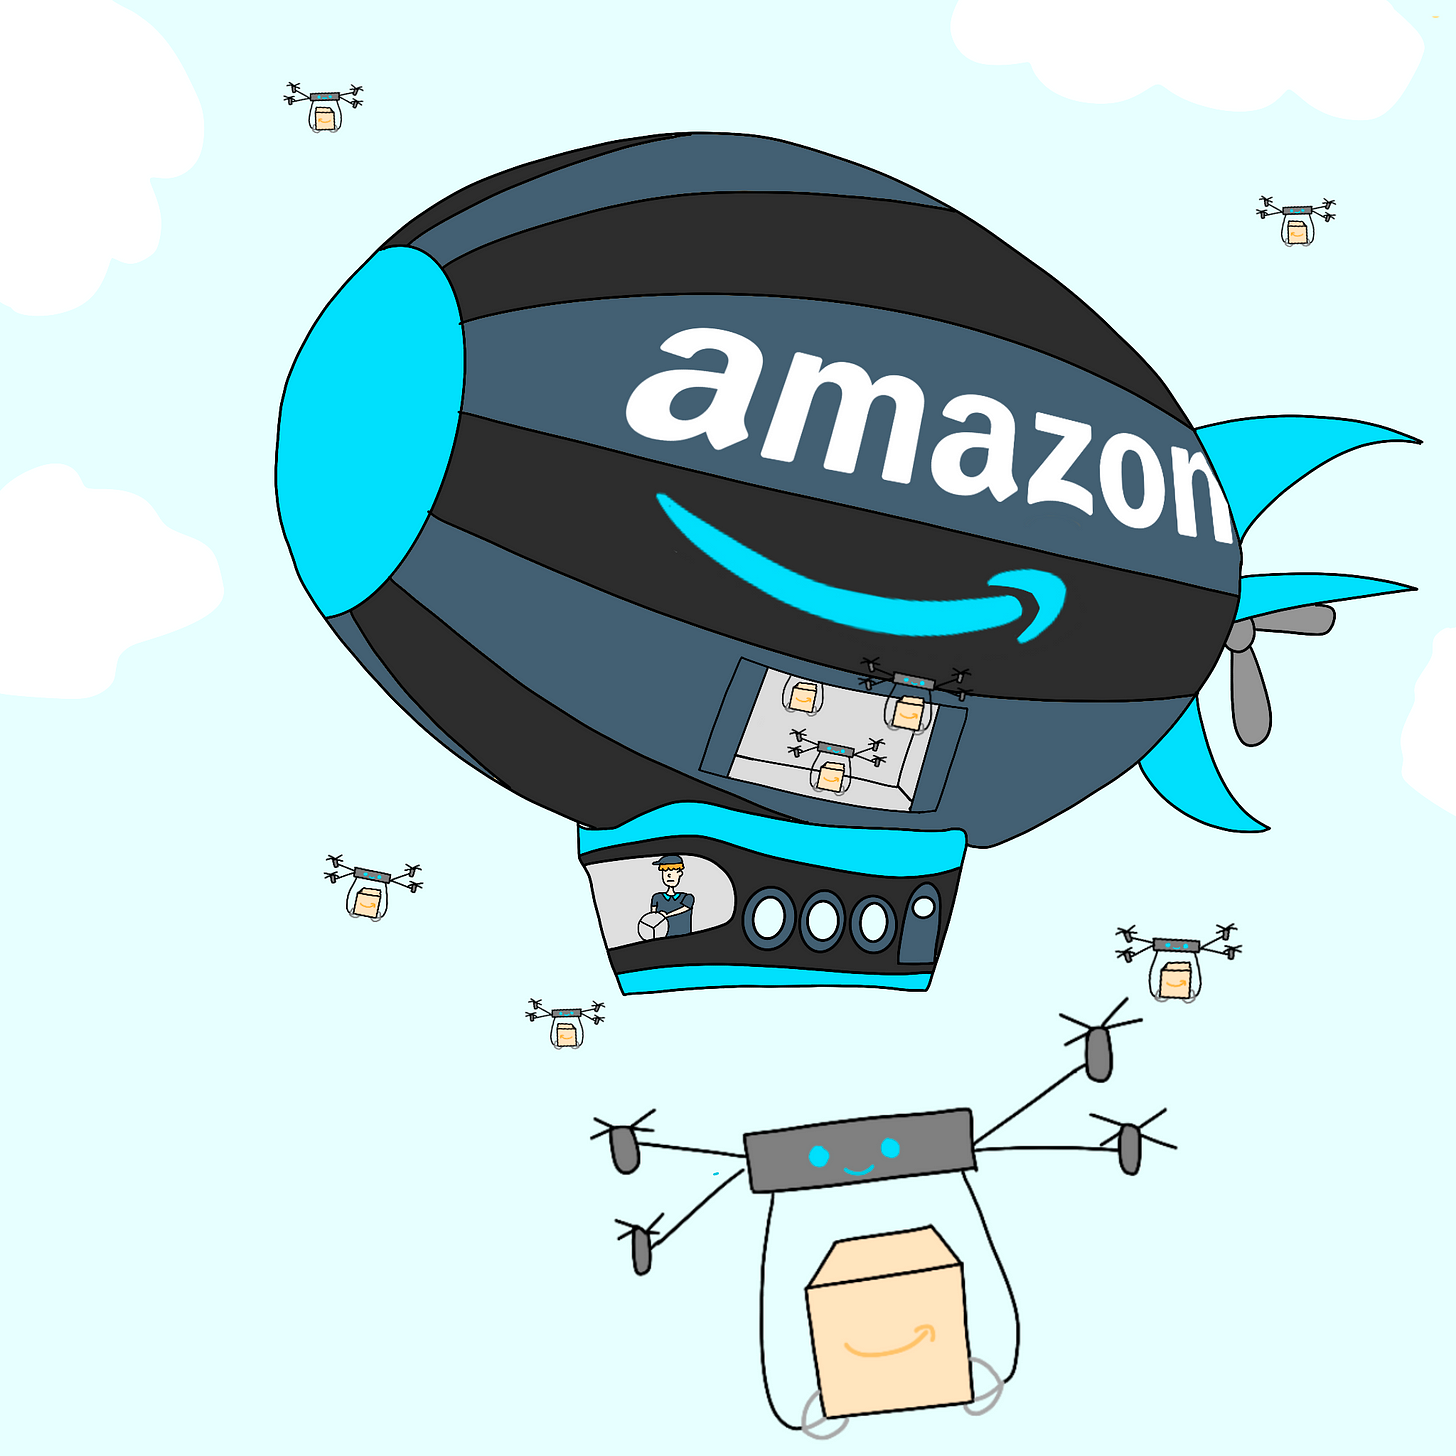 Panel 4: A flying Amazon warehouse and drones carrying packages are shown in the sky.